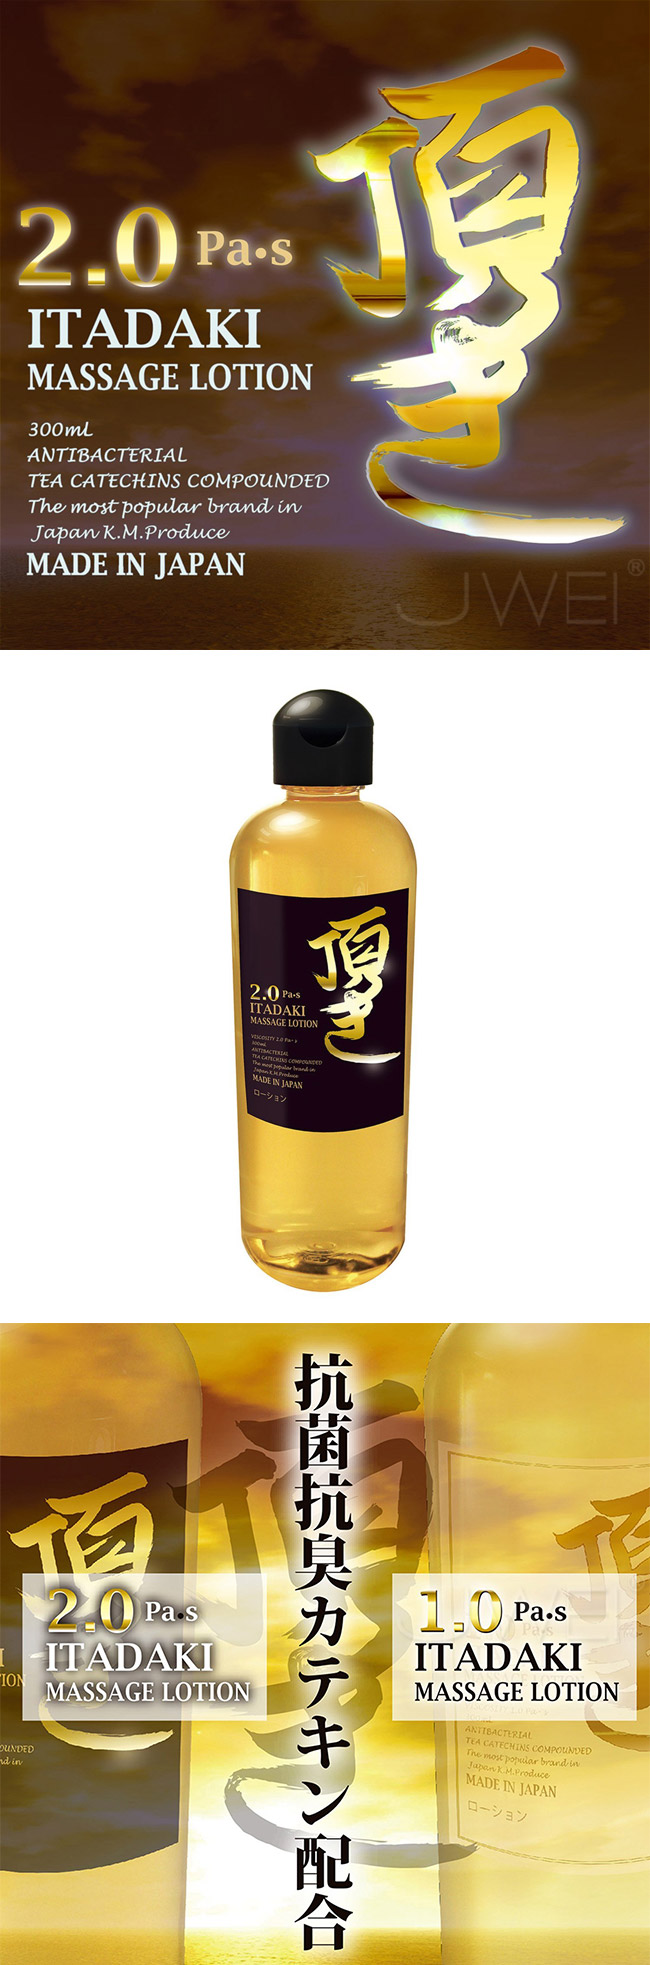 日本ITADAKI 頂きMASSAGE LOTION - 2.0 Pa・s 300ml  濃厚按摩潤滑液